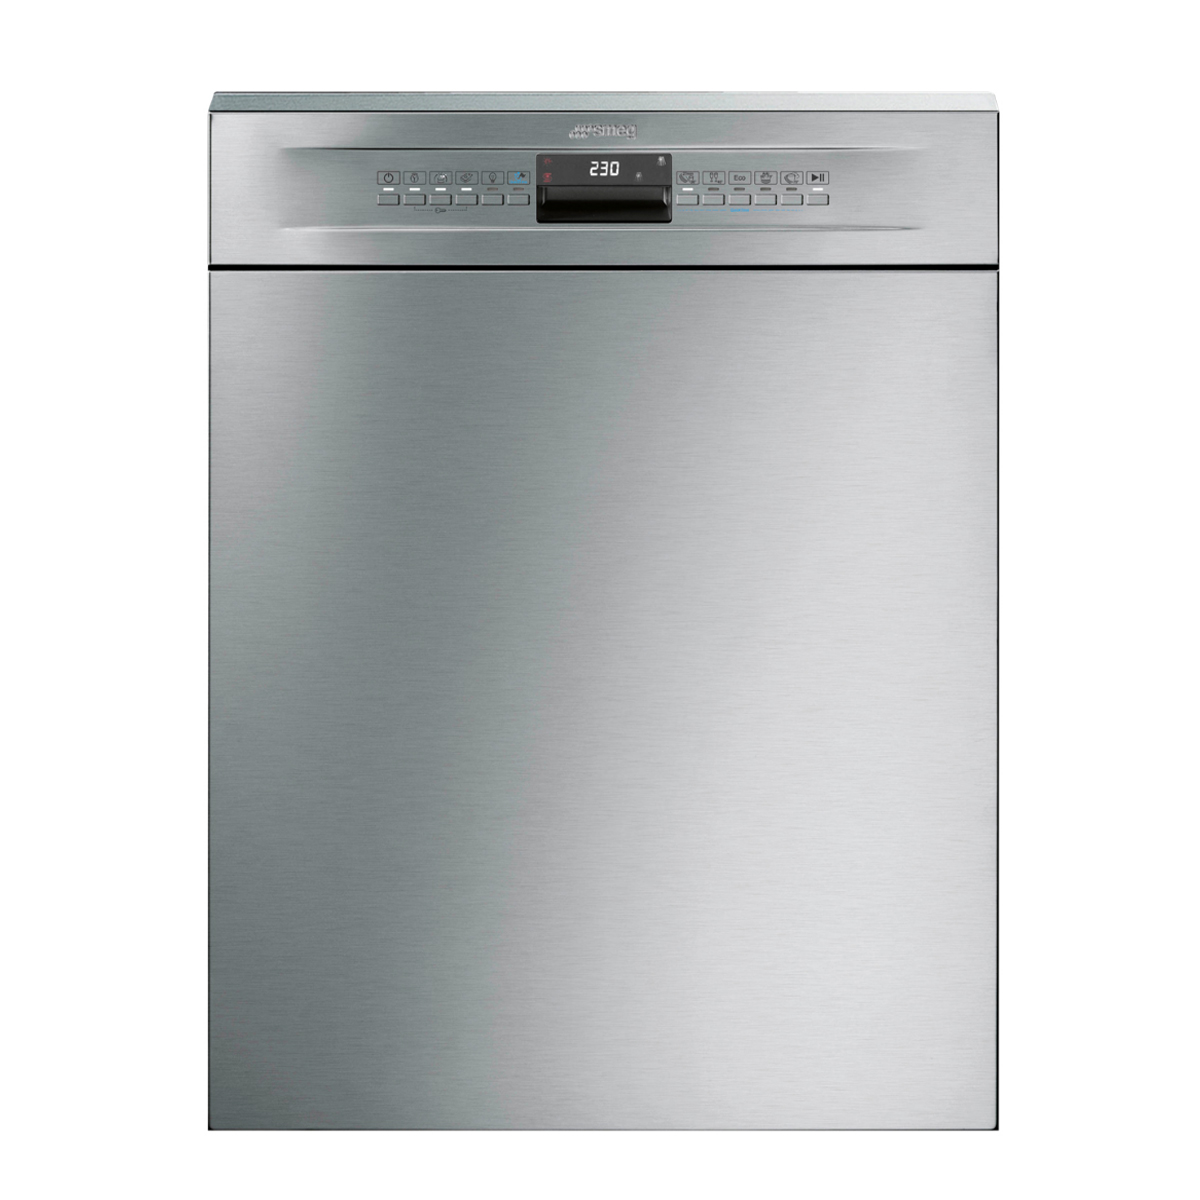 Smeg DWAU6315X Stainless Steel Under Bench Dishwasher